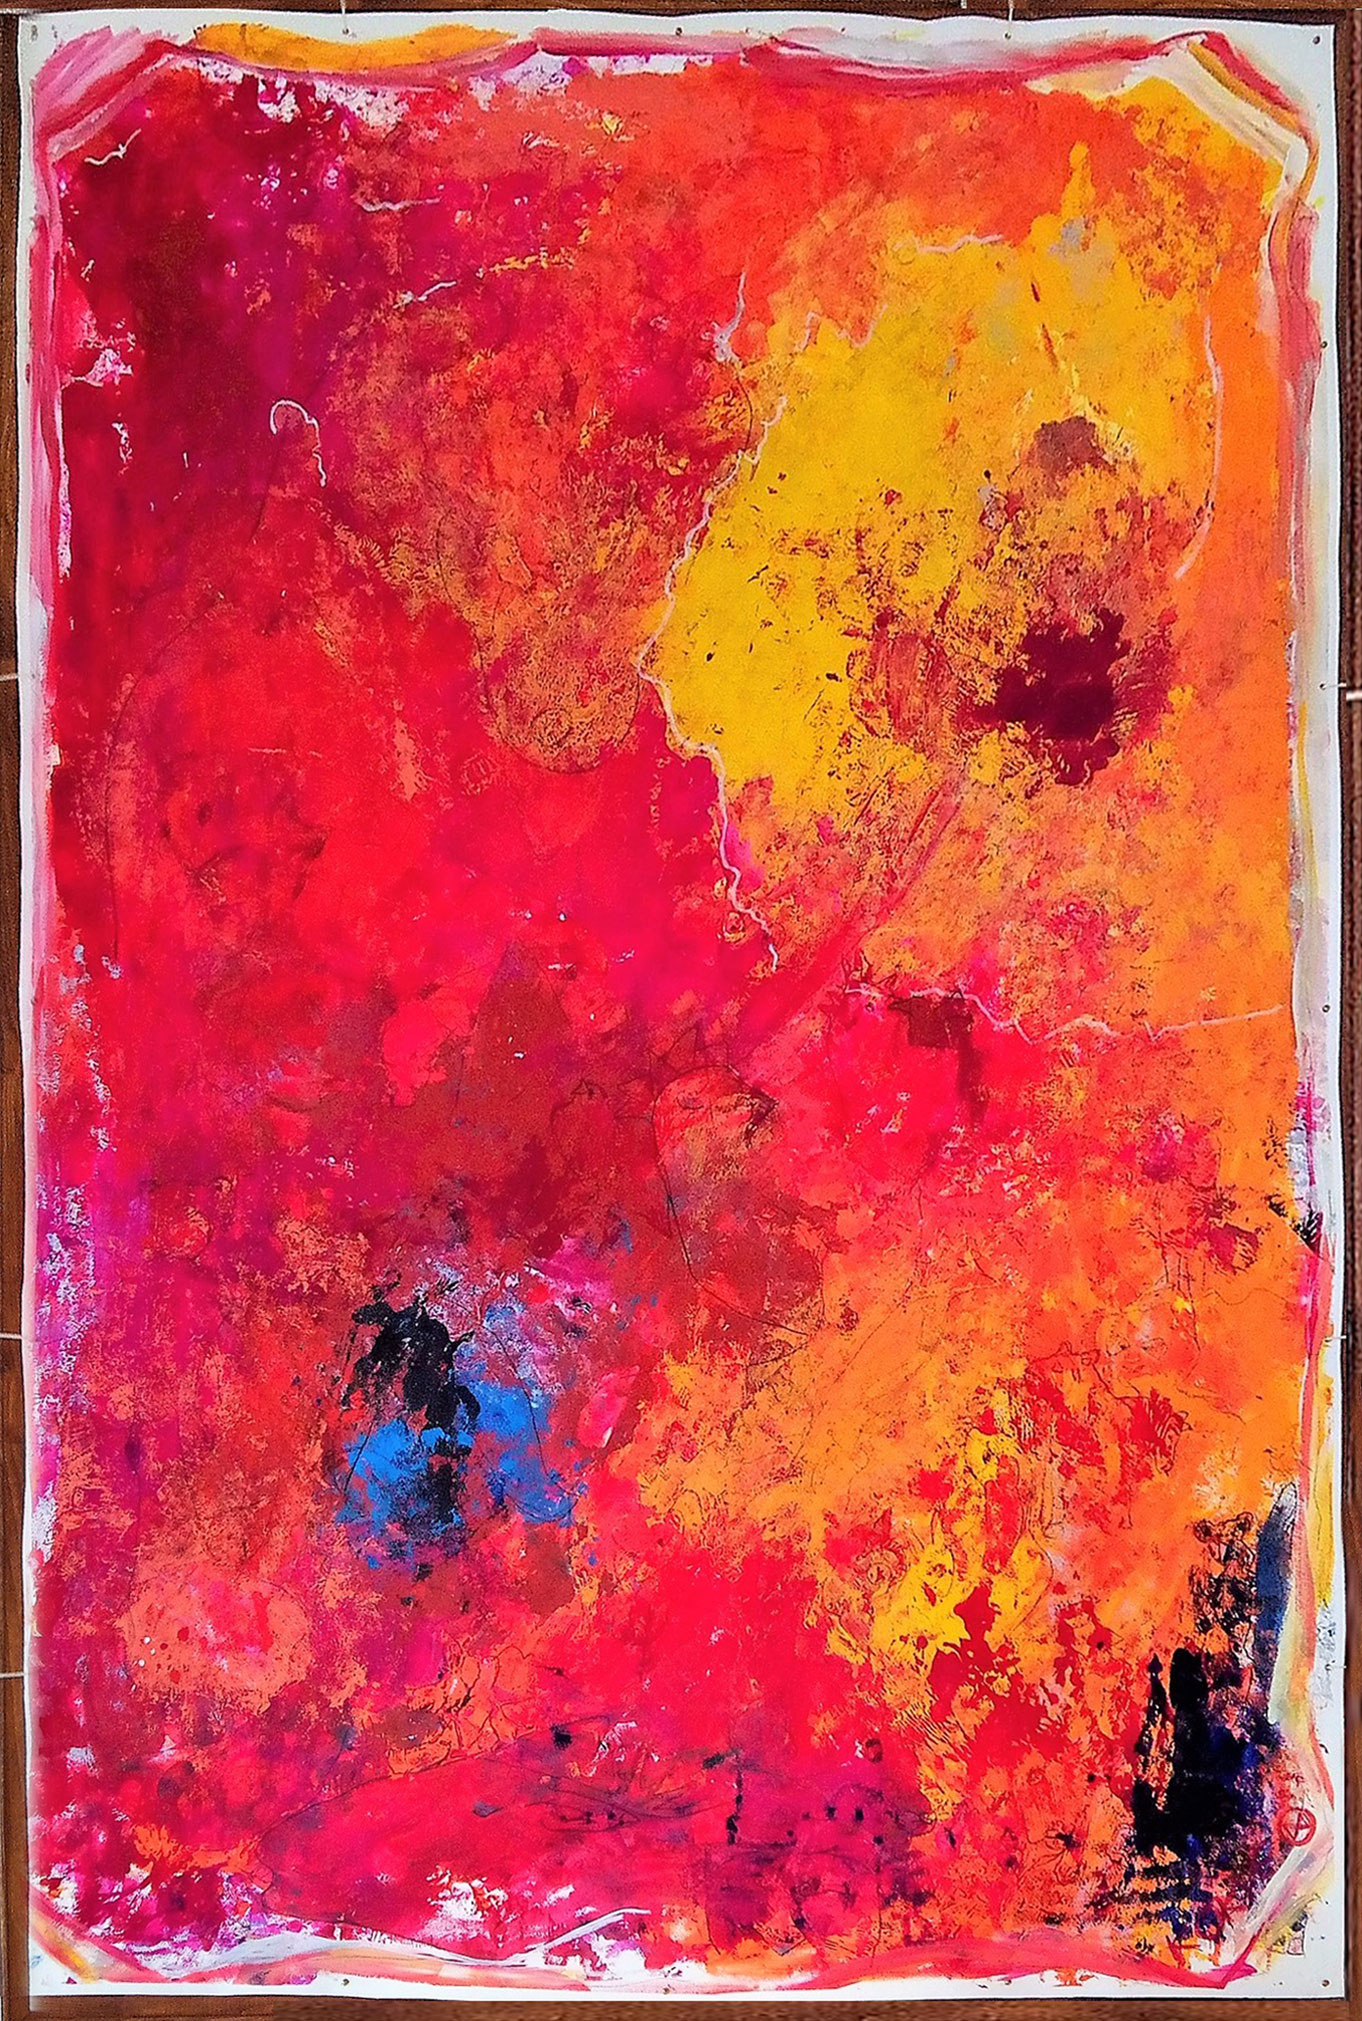 BIG RED 2.30 x 1.55 meter, object painting, cycle Trophäen